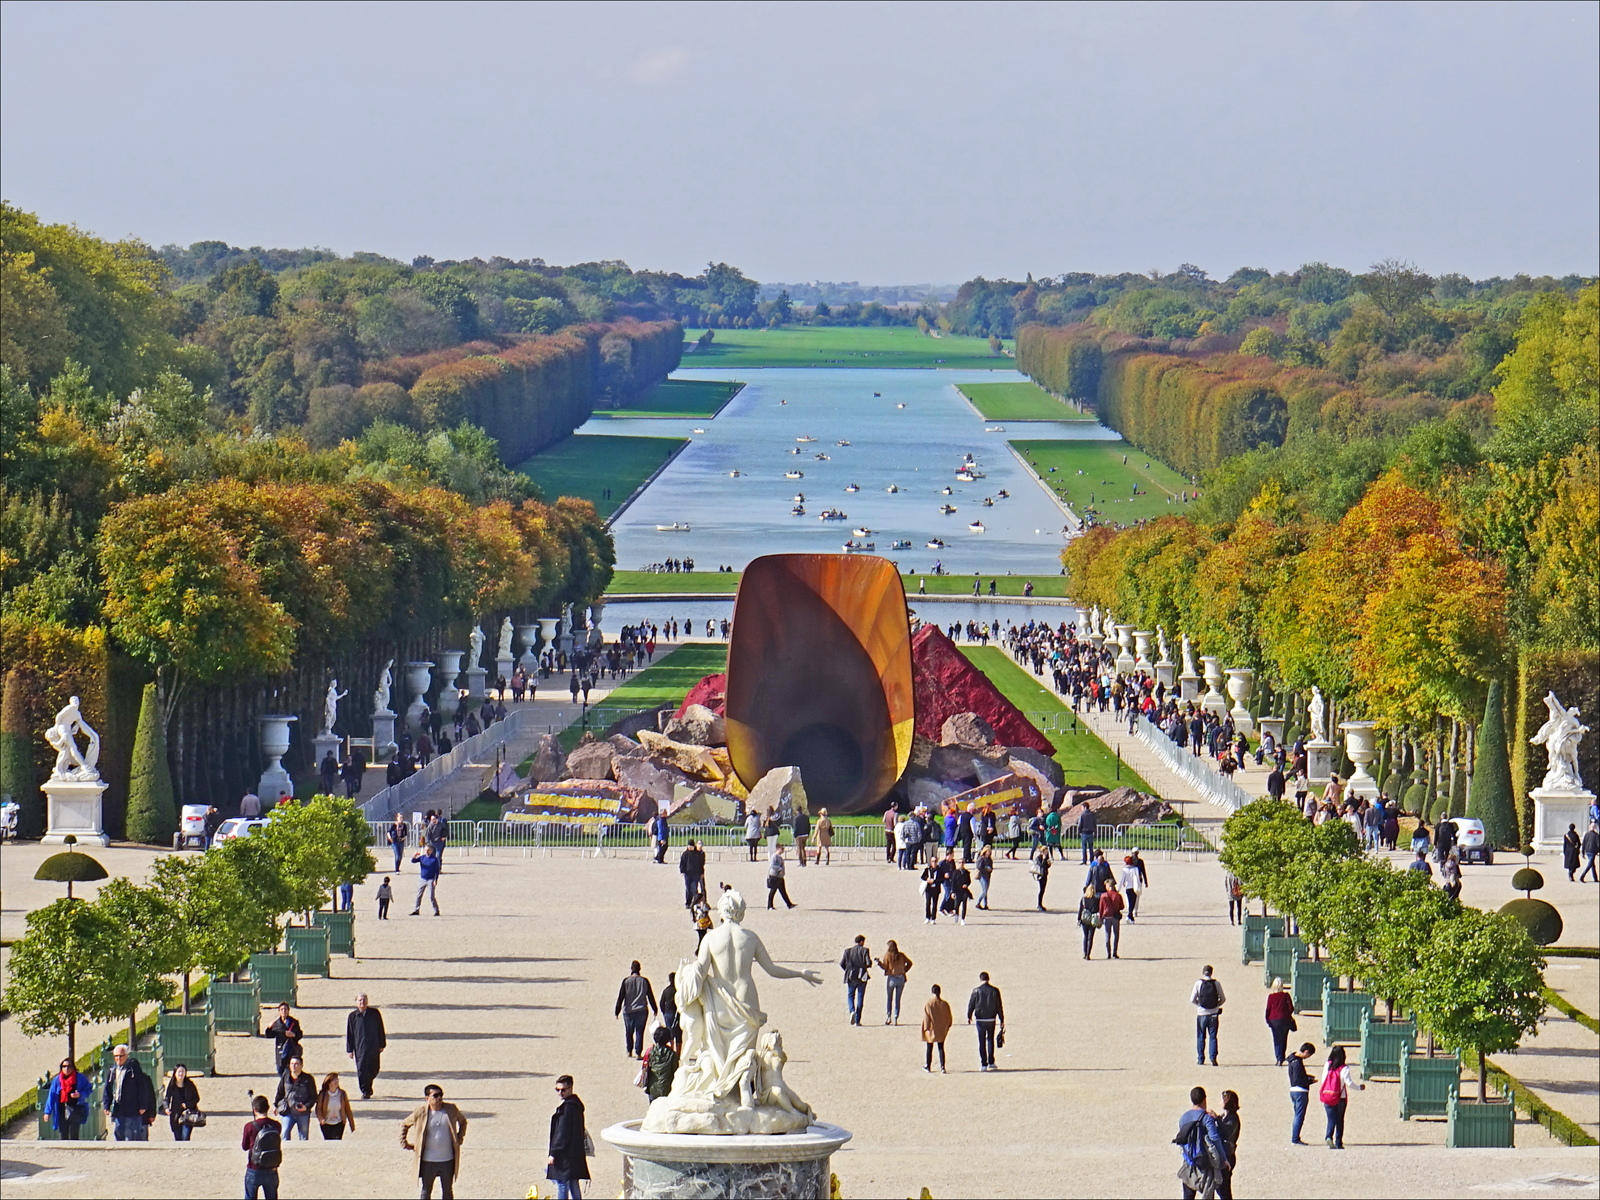 Anish Kapoor, Dirty Corner, Palace of Versailles | © Jean-Pierre Dalbéra/Flickr